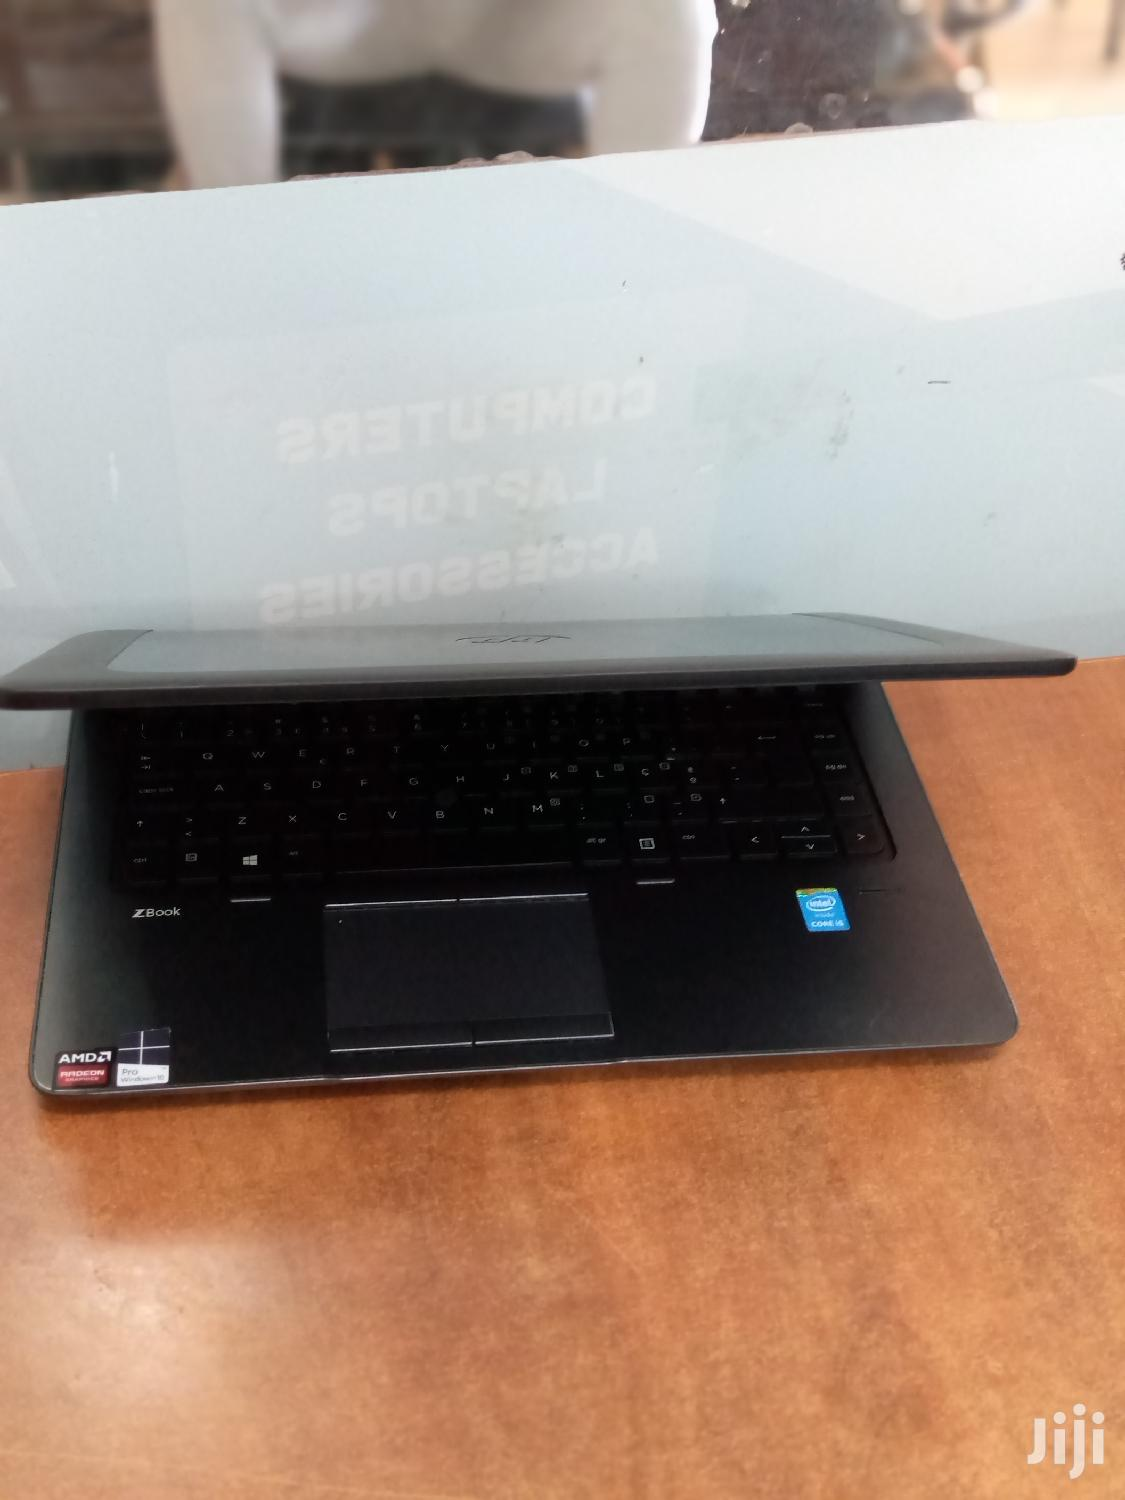 New Laptop HP ZBook 14 G2 8GB Intel Core I5 HDD 500GB | Laptops & Computers for sale in Kampala, Central Region, Uganda